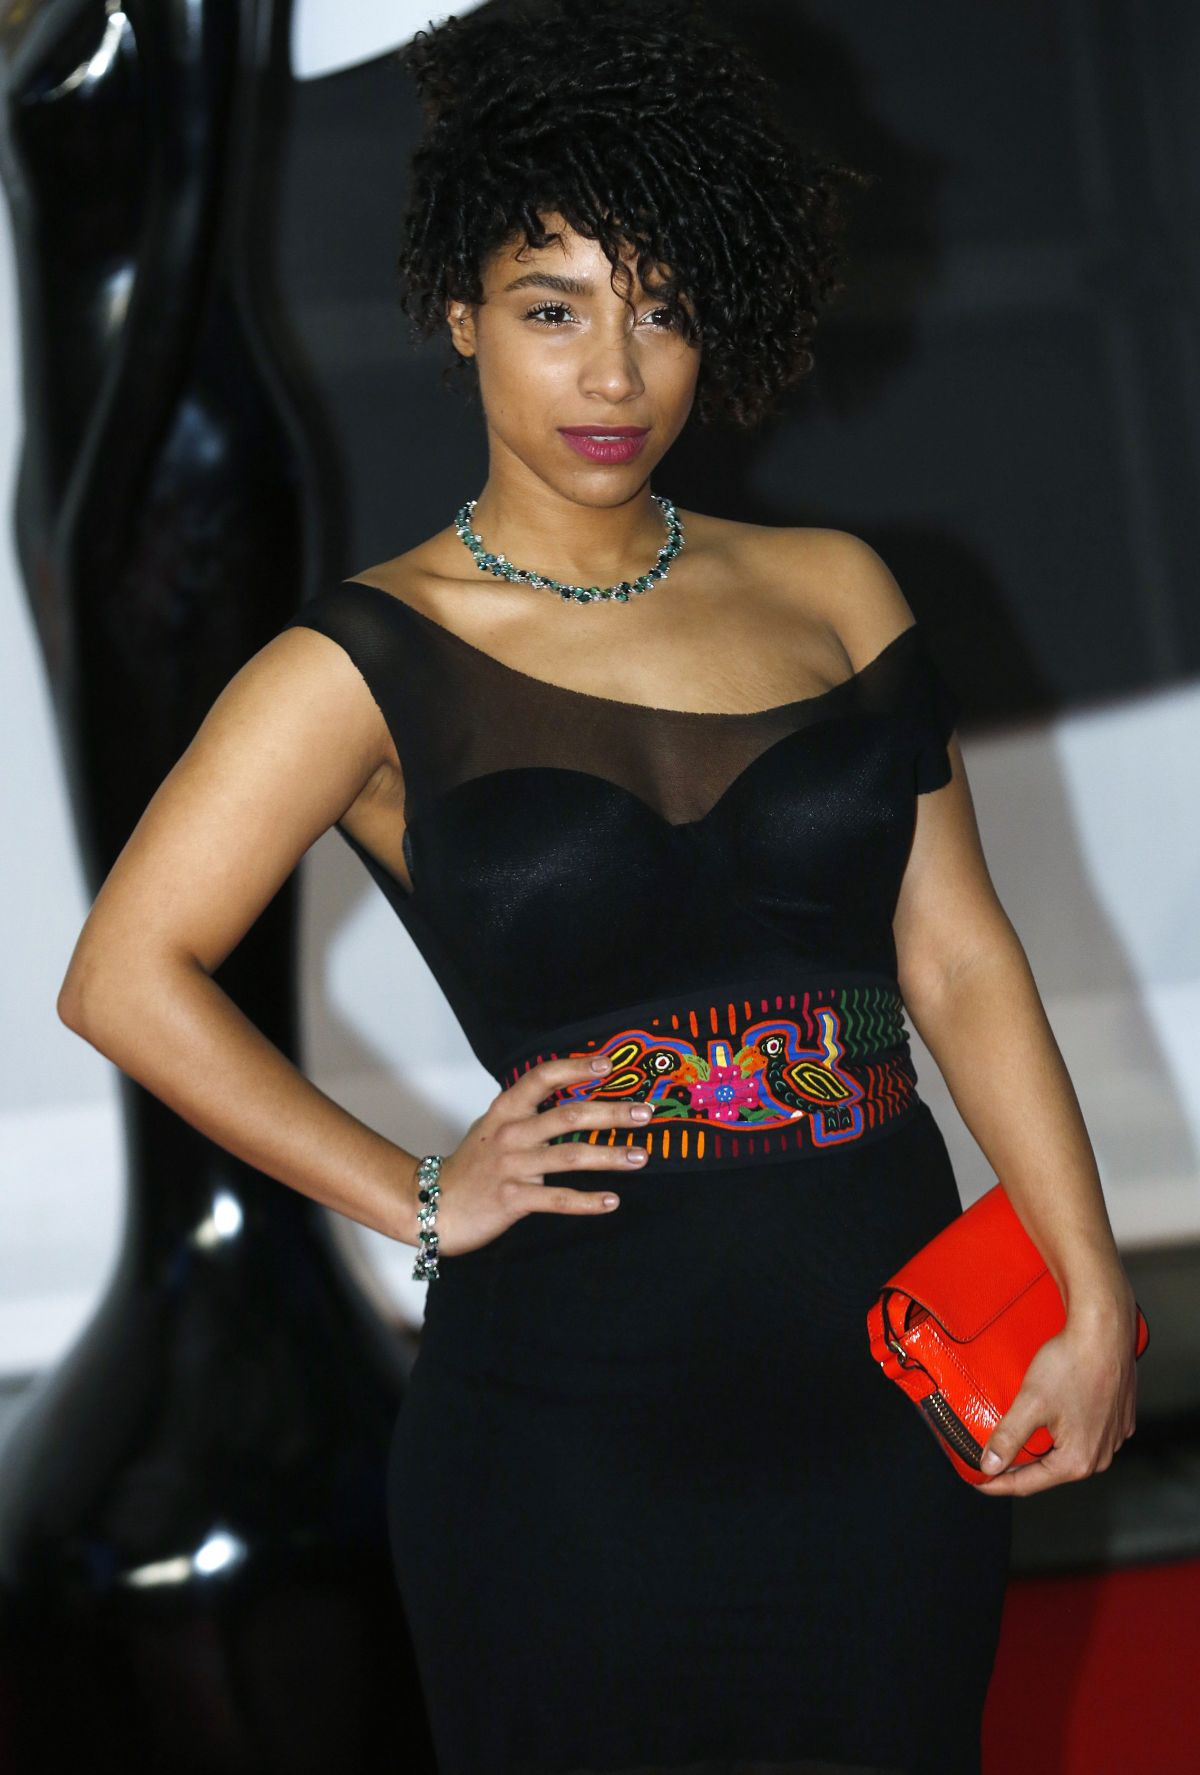 LIANNE LA HAVAS at 2014 Brit Awards in London